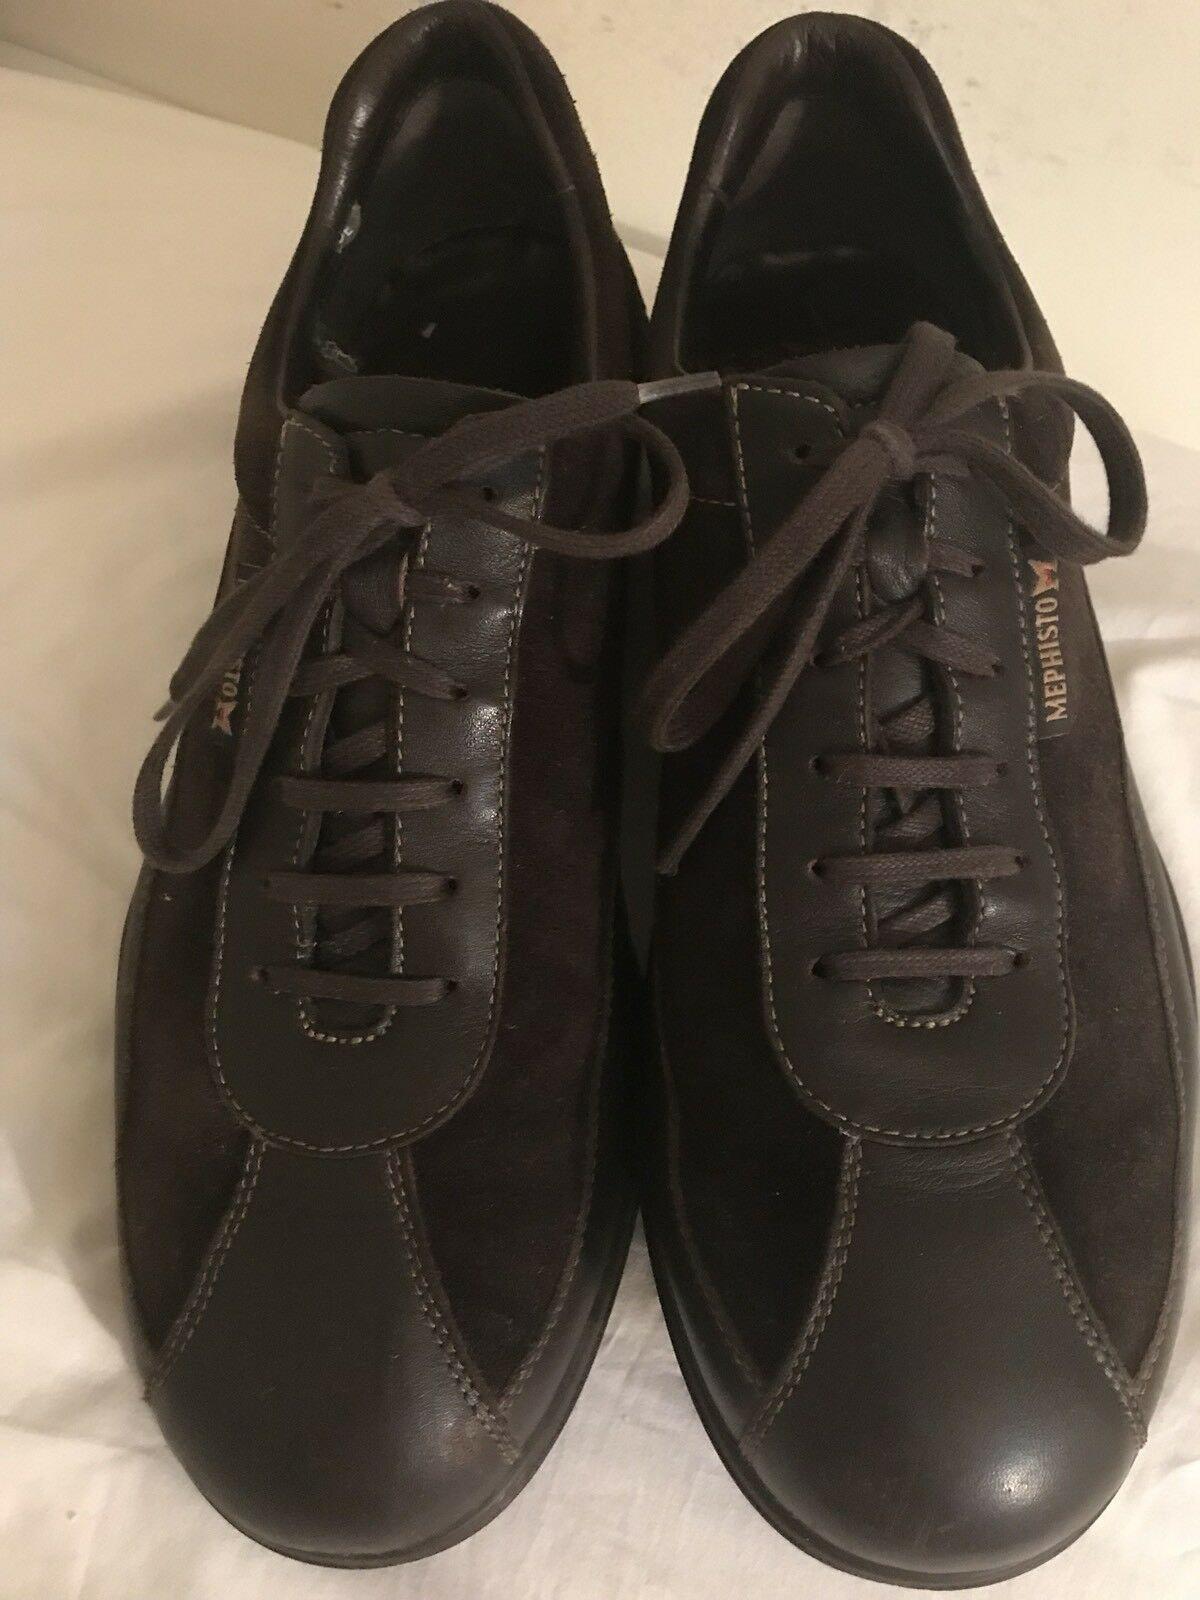 Mephisto Leather And Suede Brown Fashion Sneakers U.S. 9 1 2